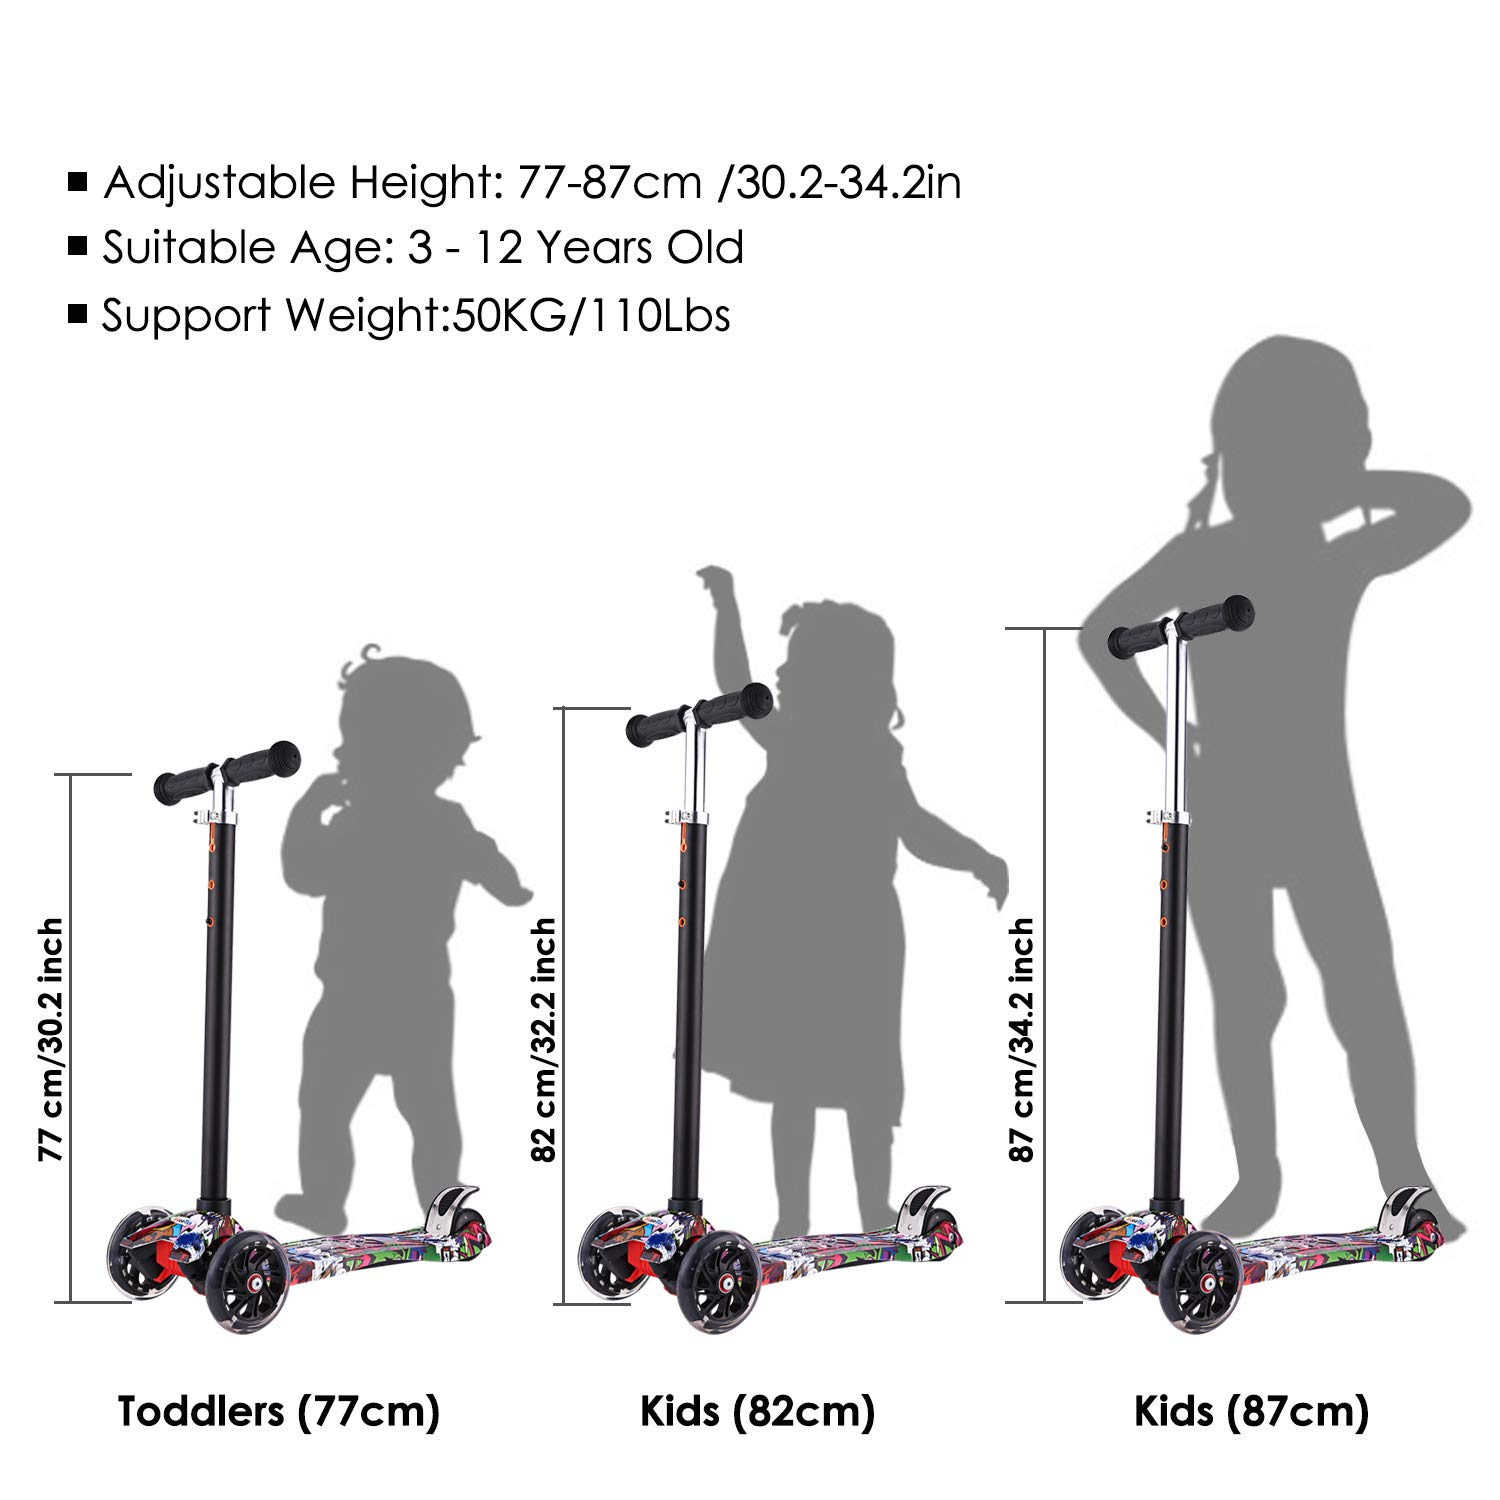 Hikole Kids Scooter - Adjustable, 3 Wheel Mini Adjustable Kick Scooter with LED Light Up Wheels, Gifts for Girls Boys Age 3 to 12, Support 100Lbs by Hikole (Image #3)